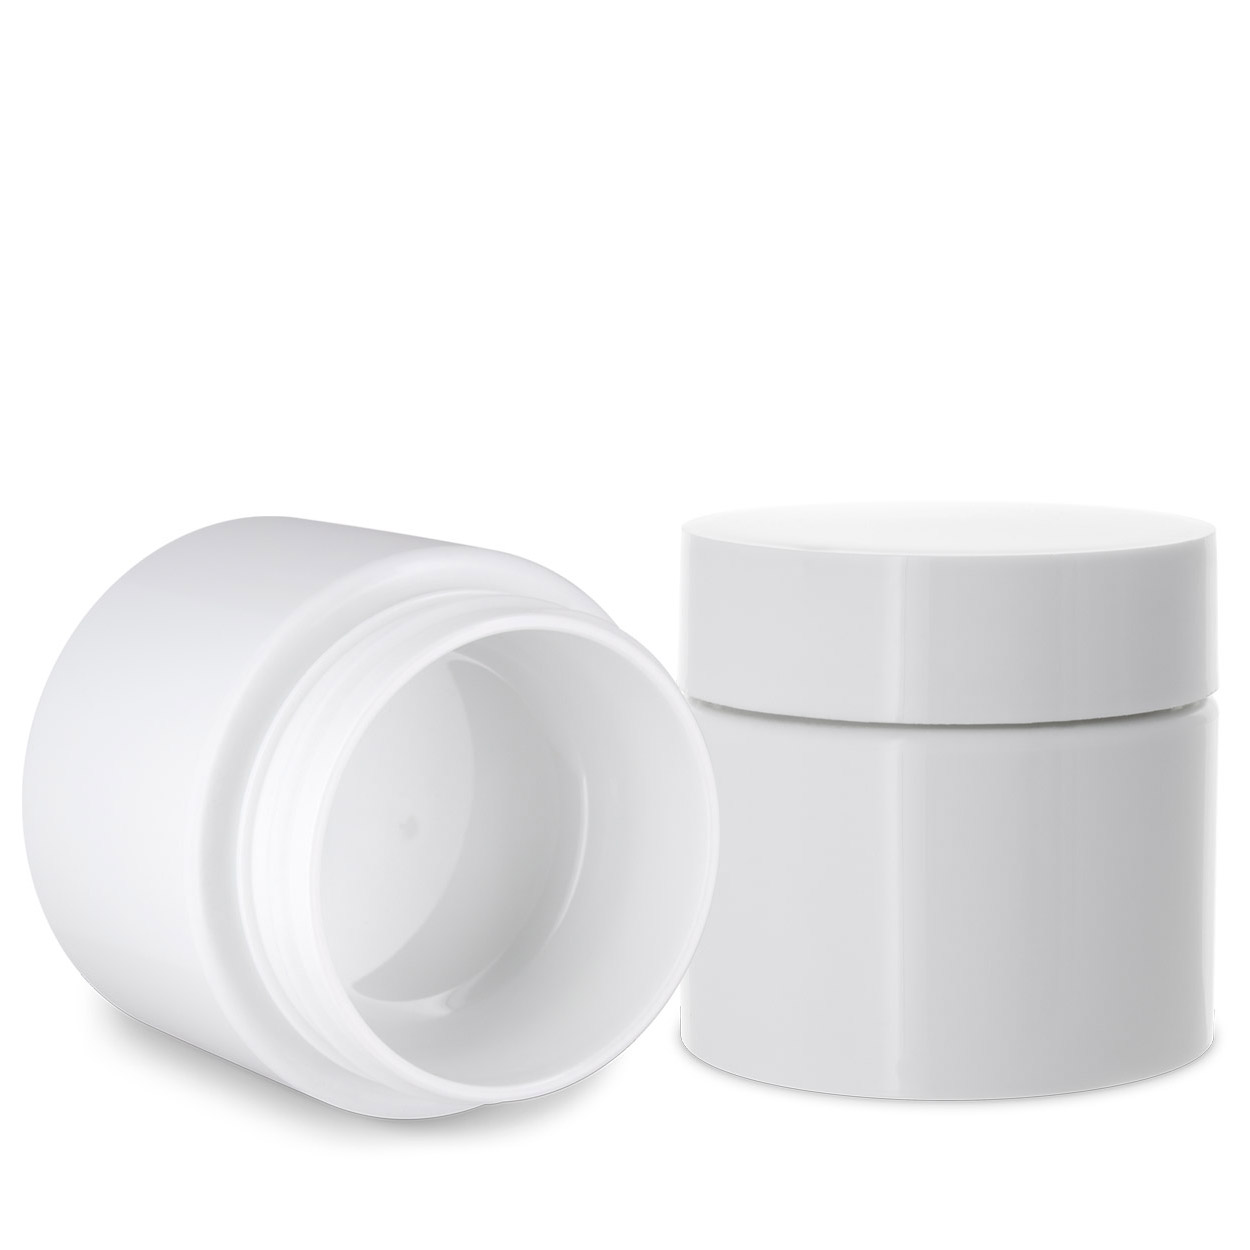 1 Gram Double Shell Jars  - WHITE (Patent #D862,233 S)